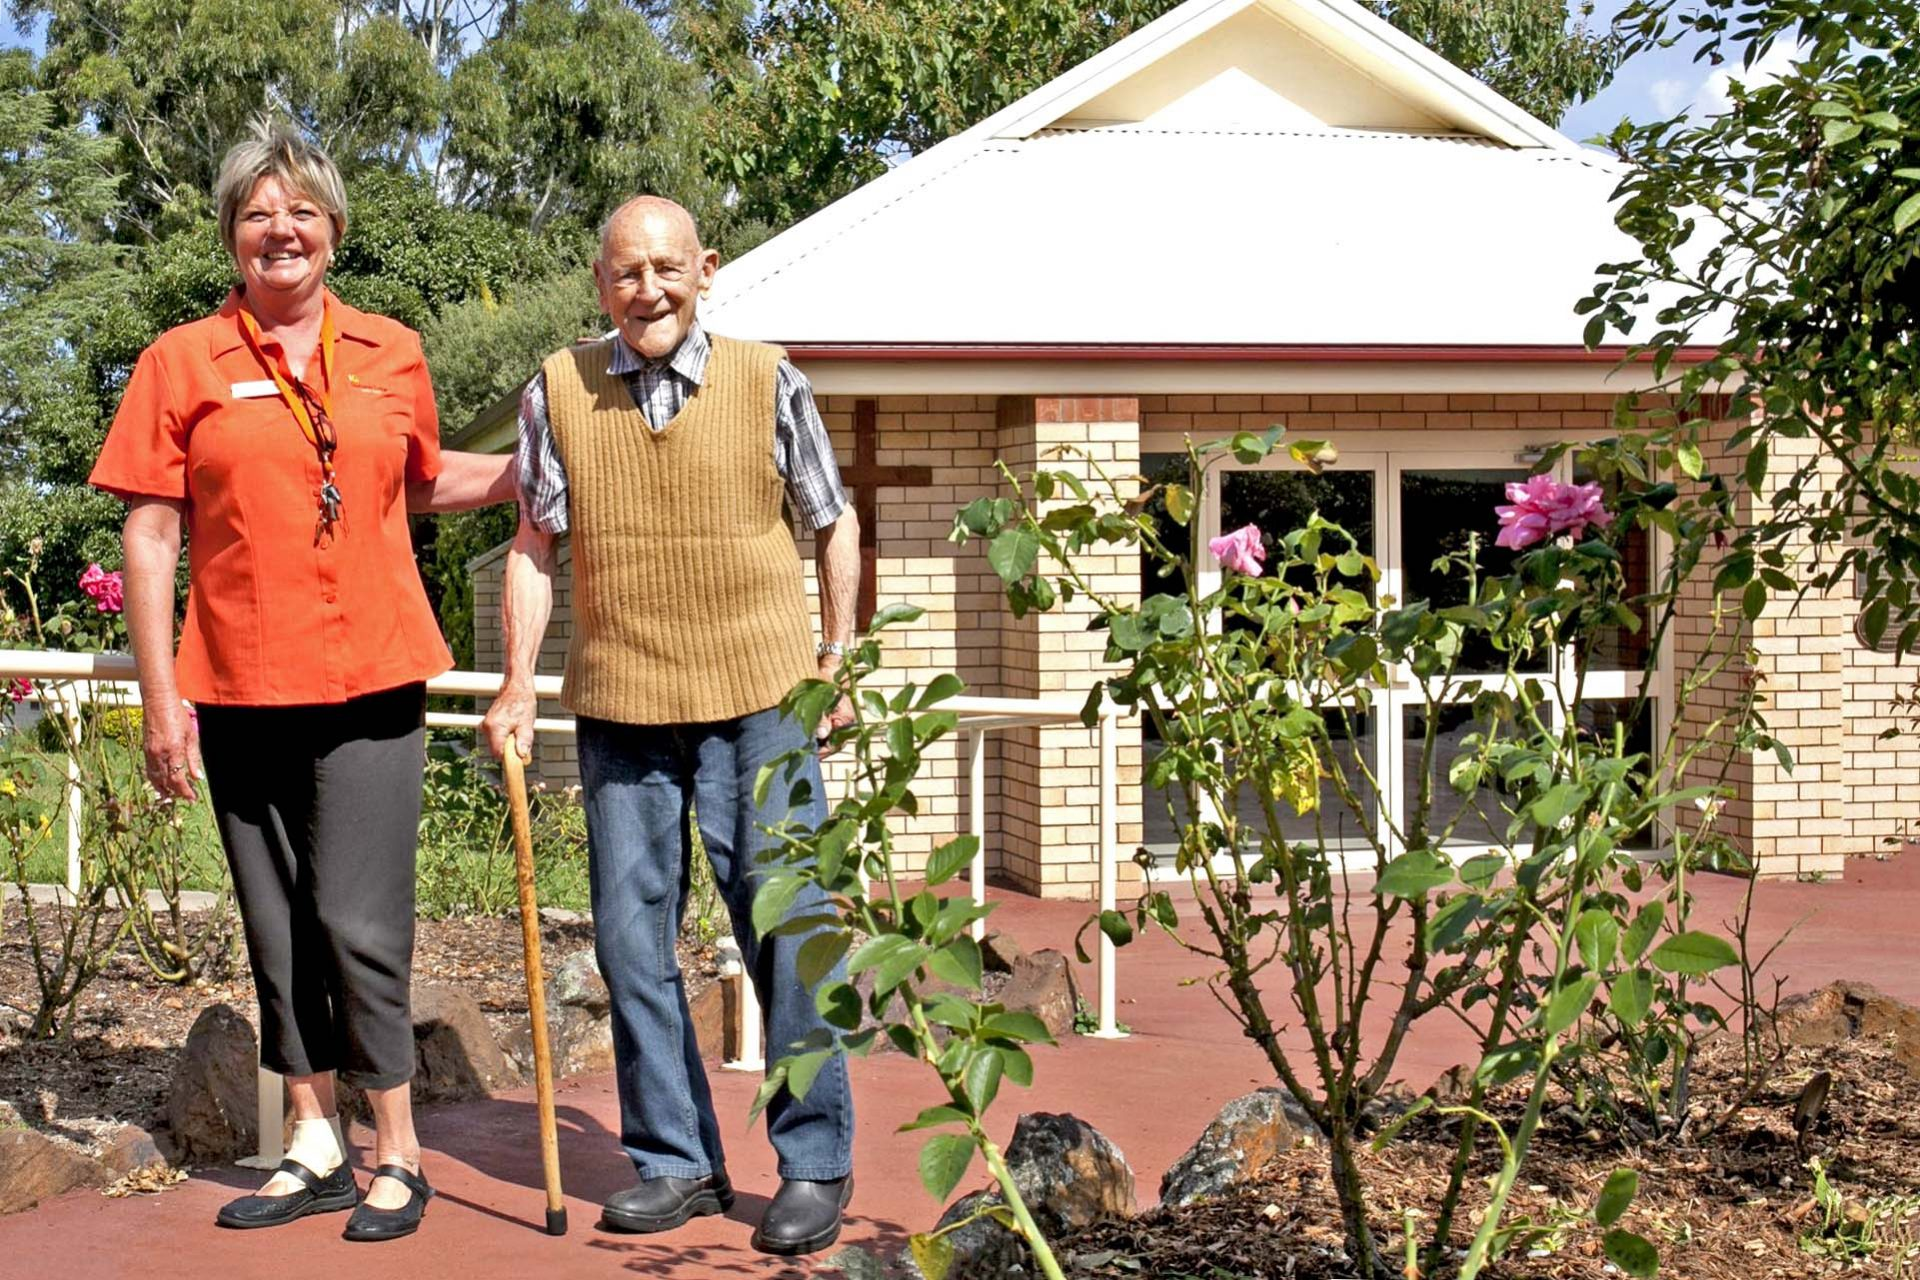 Our comfortable independent living units are surrounded by gardens with easy walking paths.